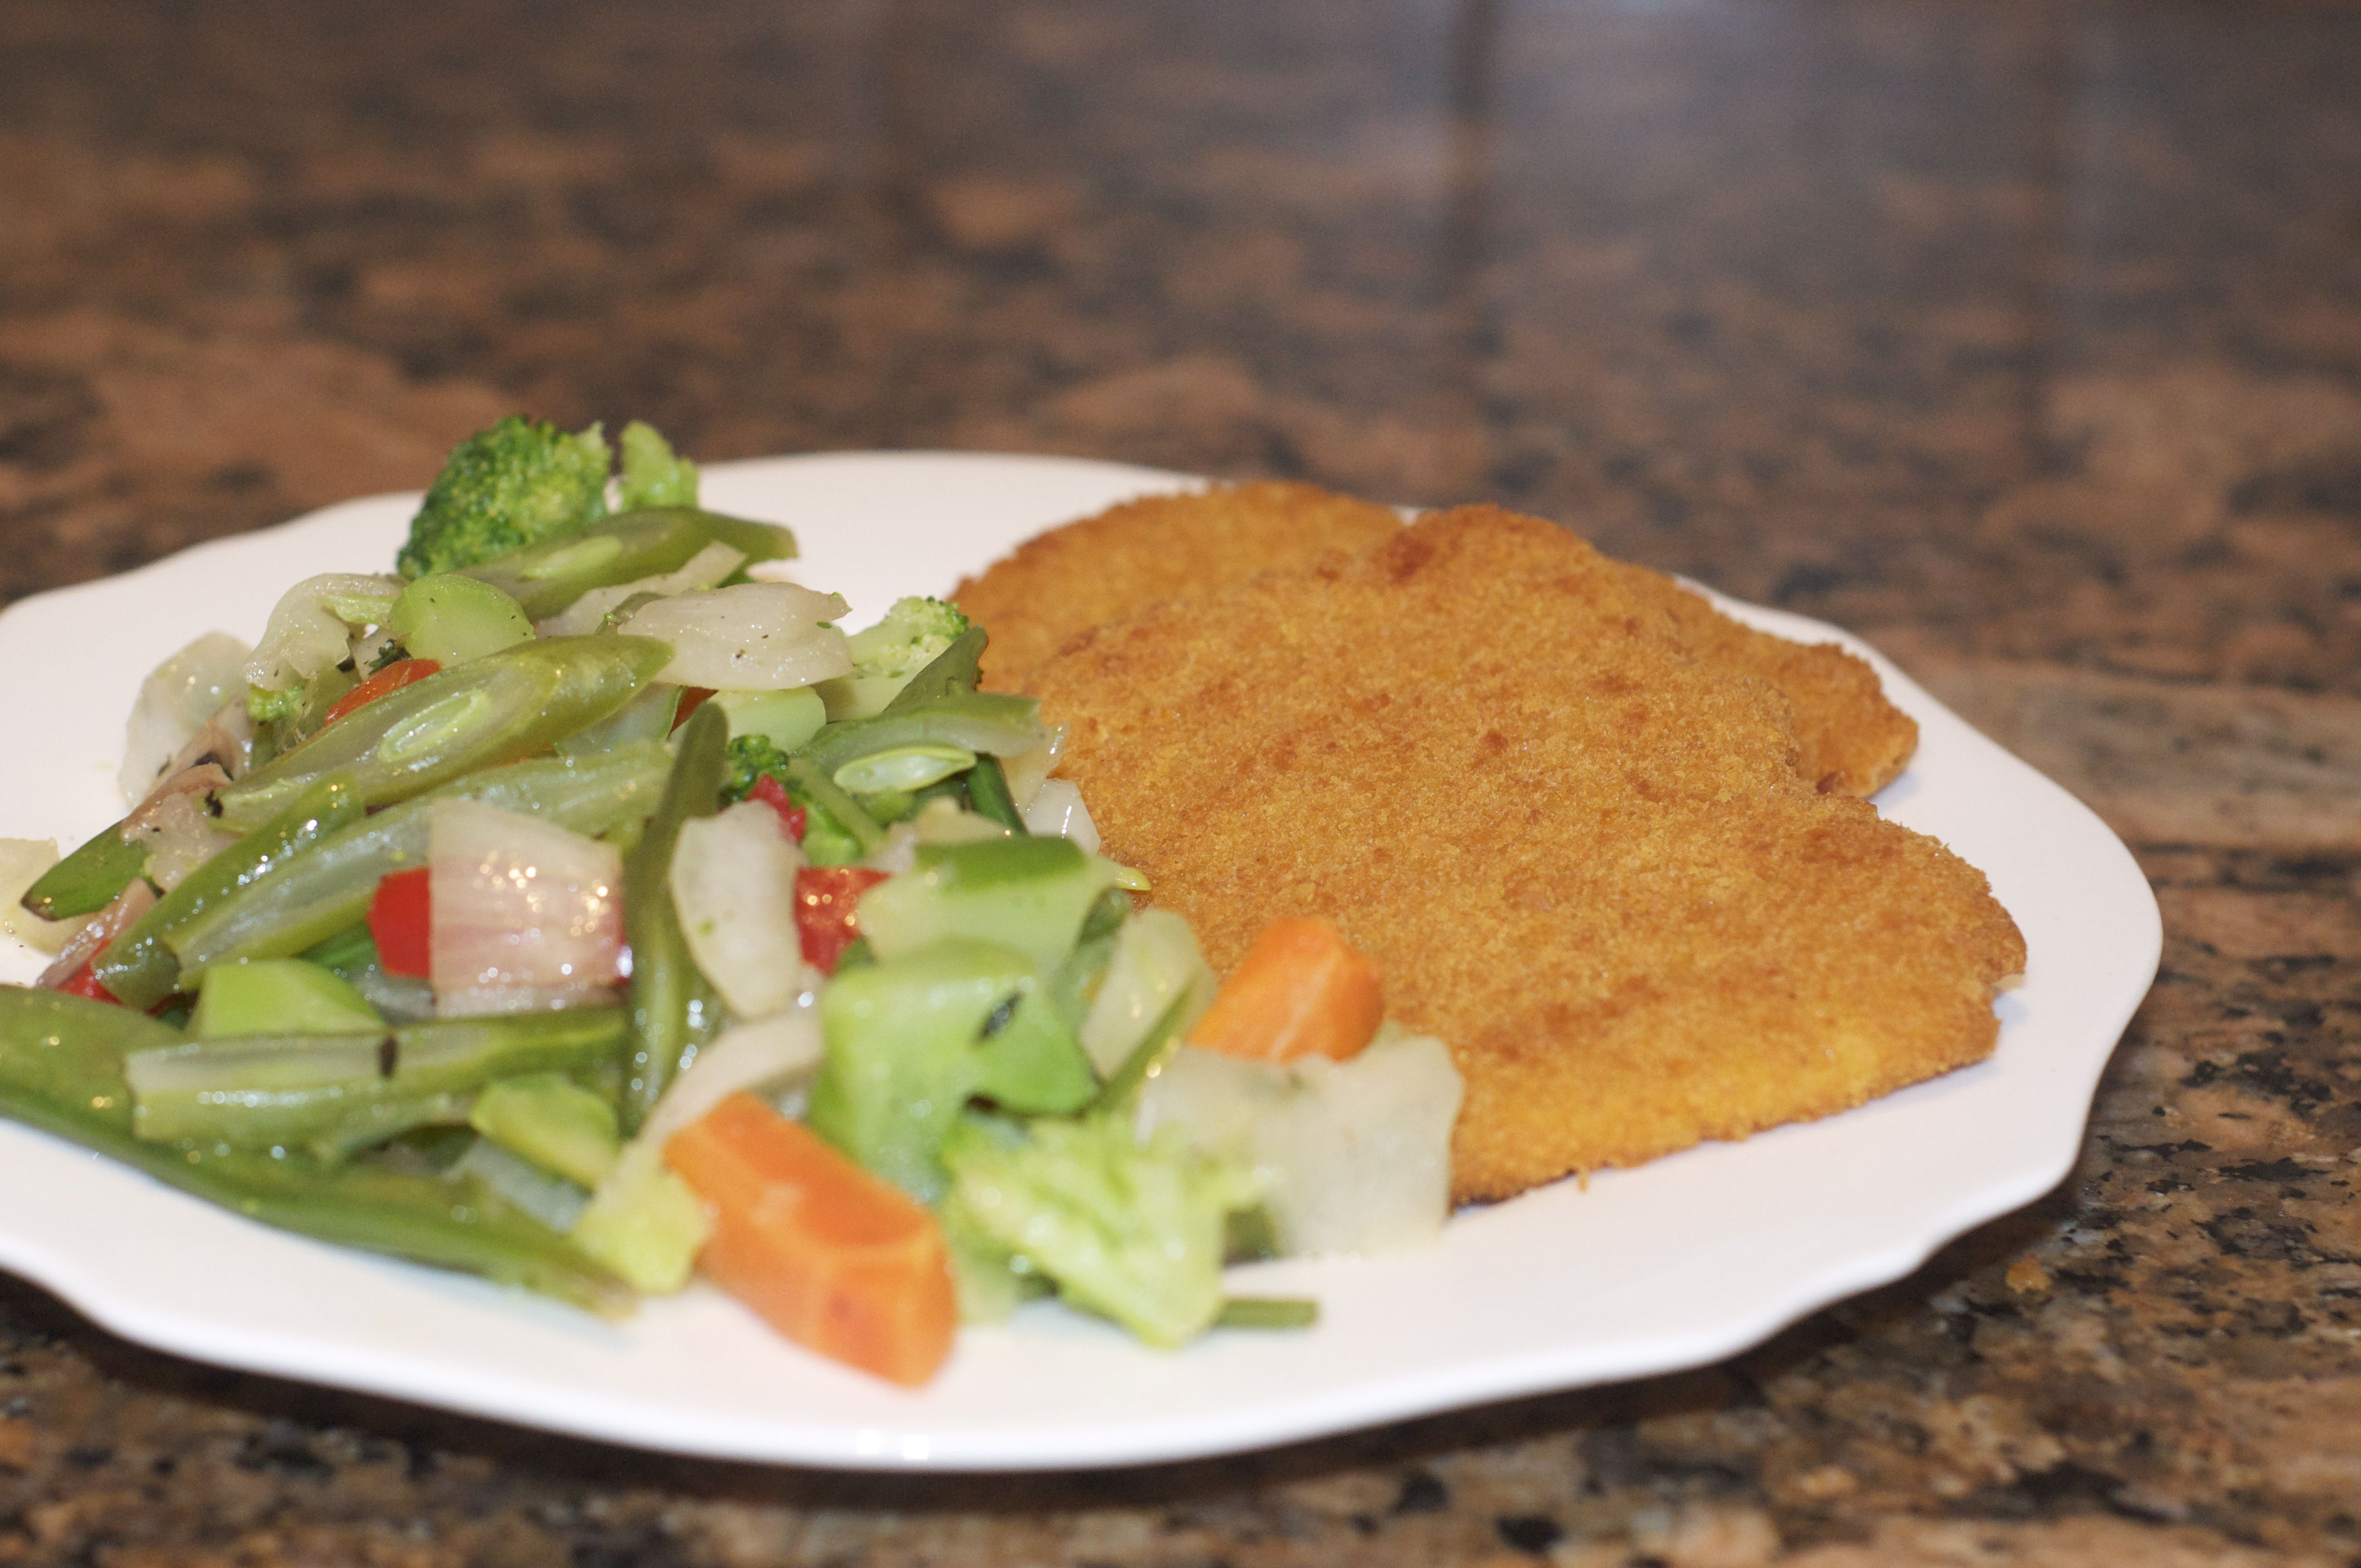 Veggie breaded chicken flavored scallopini with vegetables